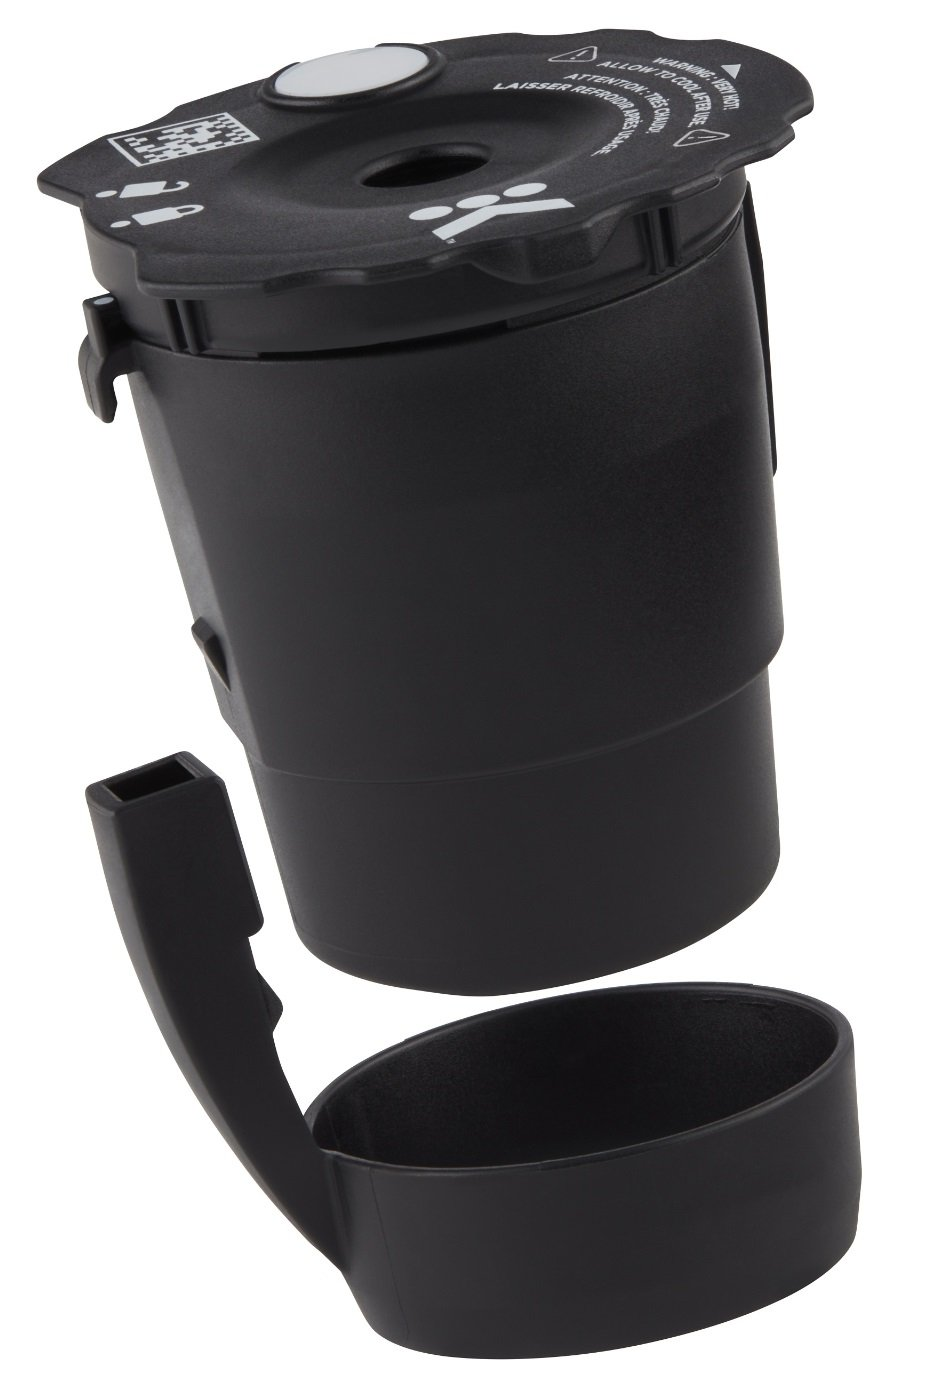 Keurig My K-Cup Universal Reusable Ground Coffee Filter, Compatible with All Keurig K-Cup Pod Coffee Makers (2.0 and 1.0) by Keurig (Image #3)